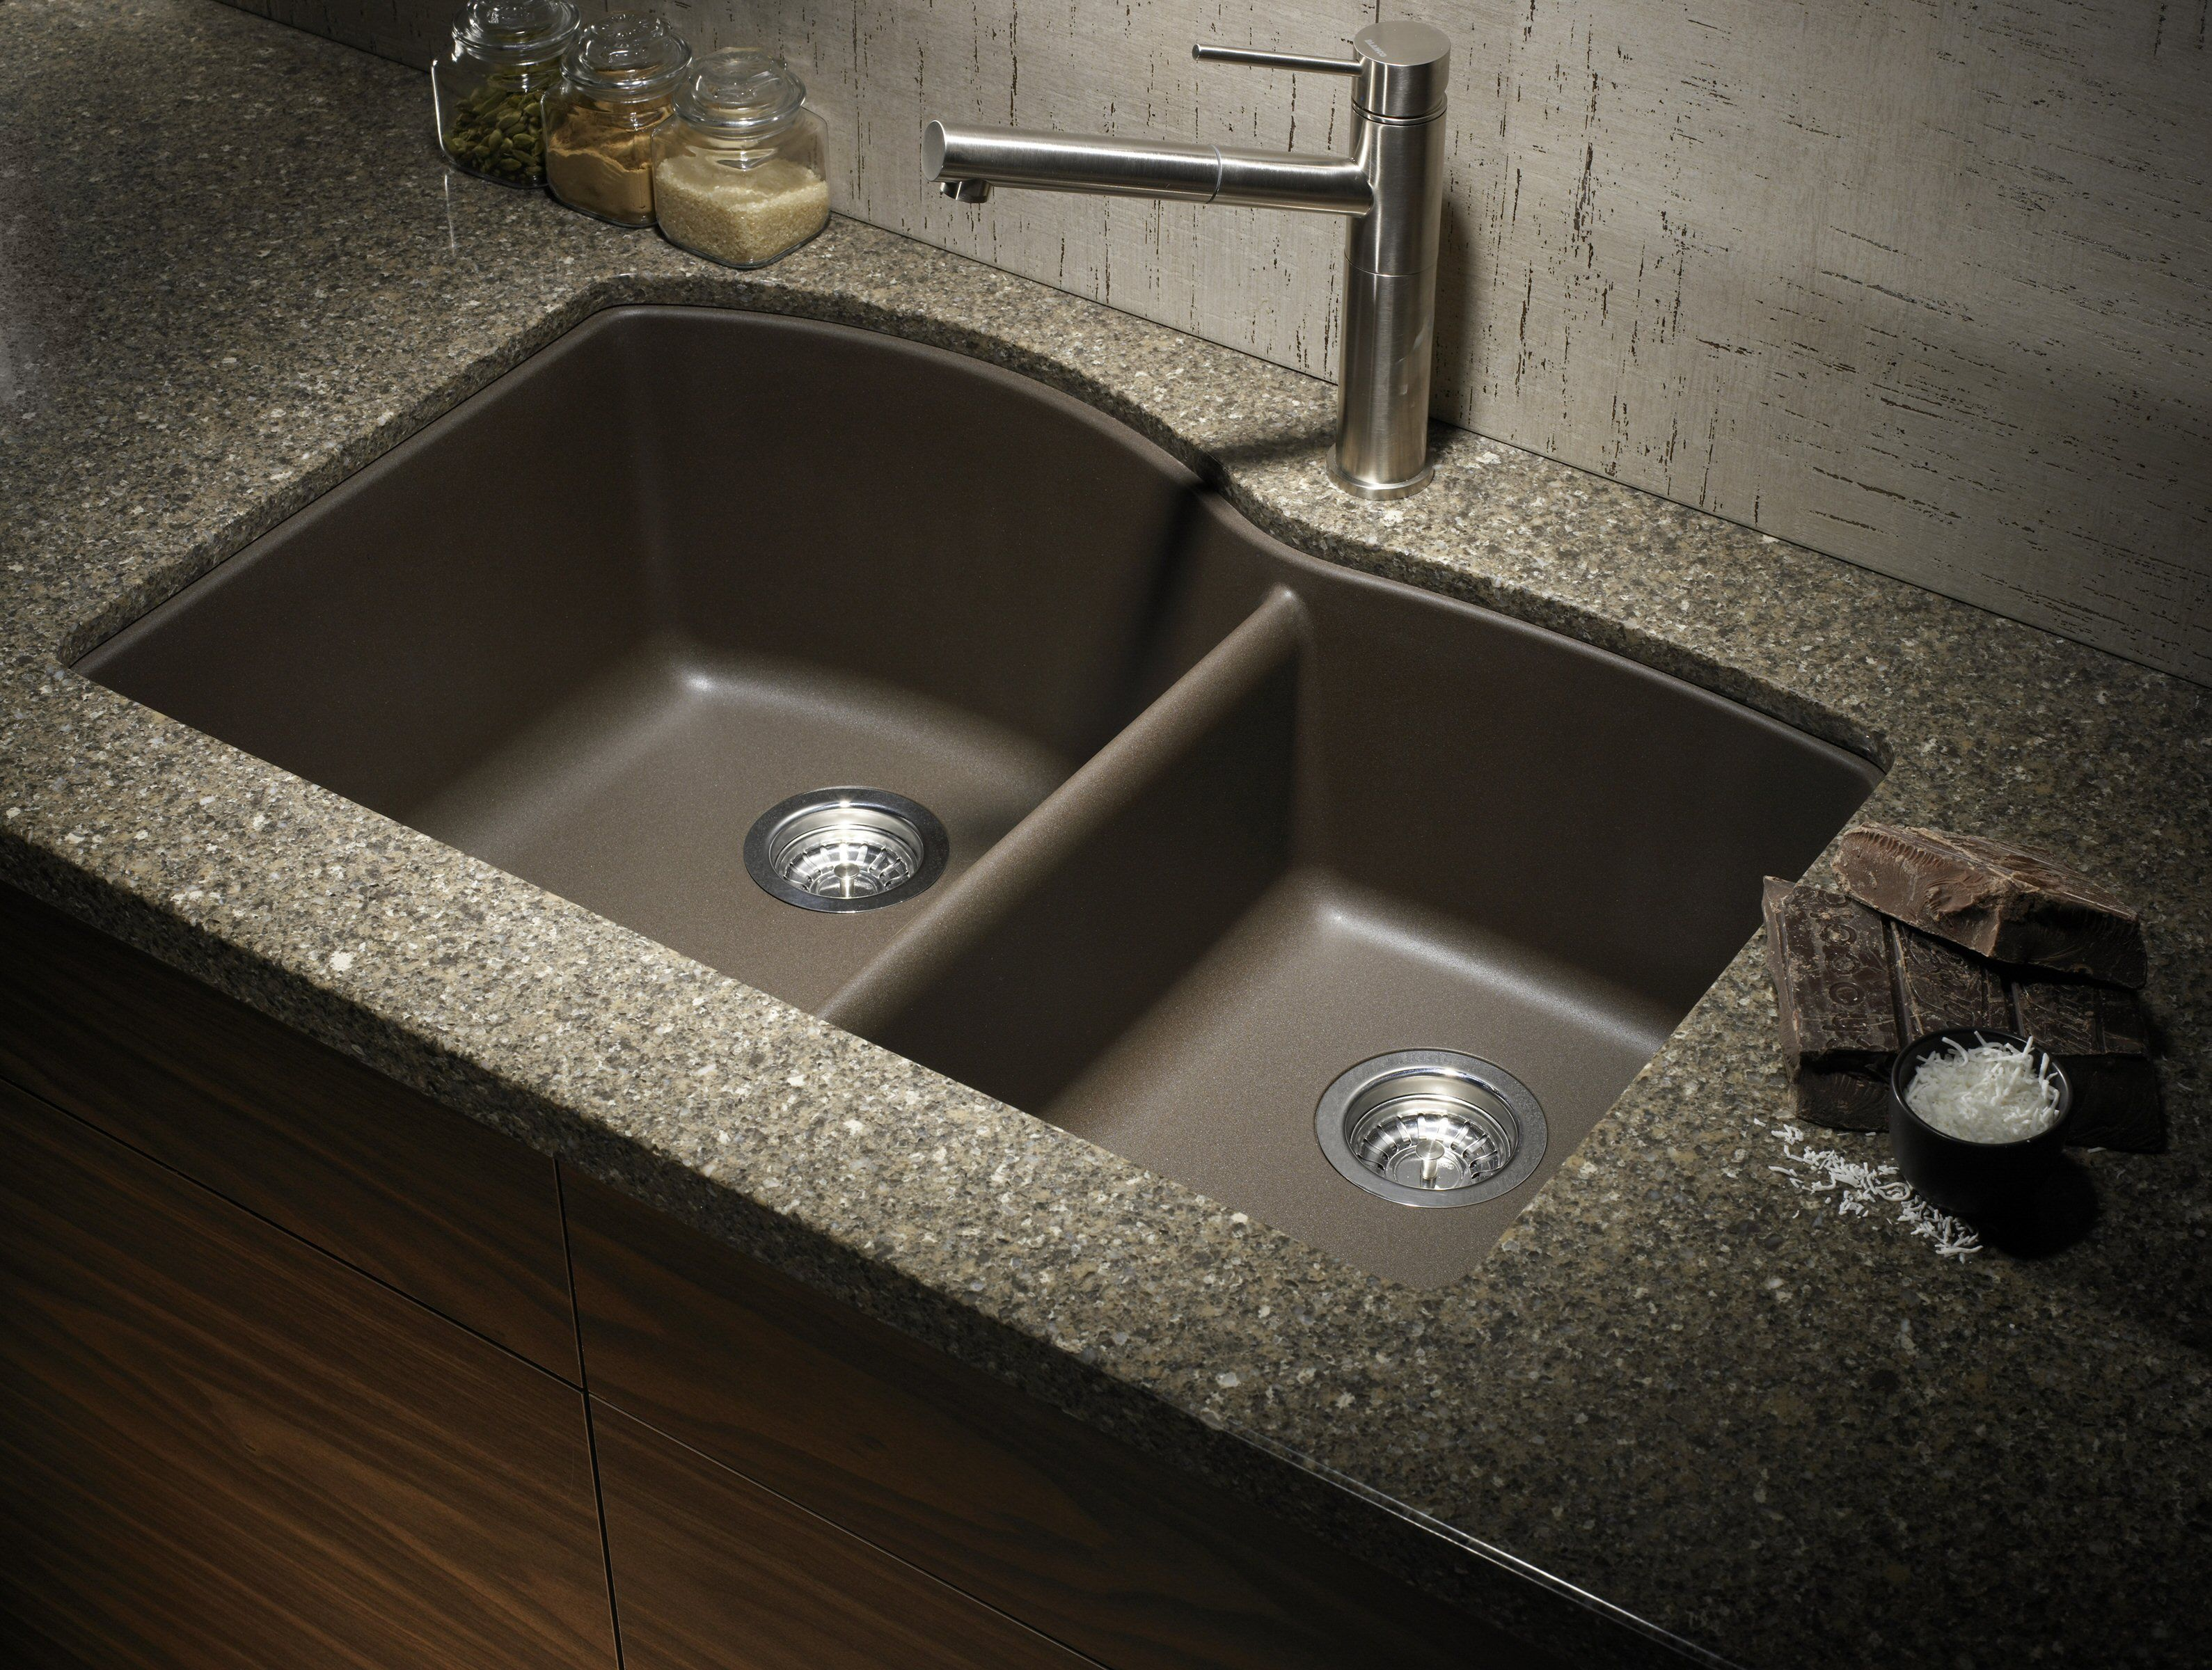 nice How To Clean Black Granite Composite Kitchen Sink #4: How to Clean a Granite Composite Sink